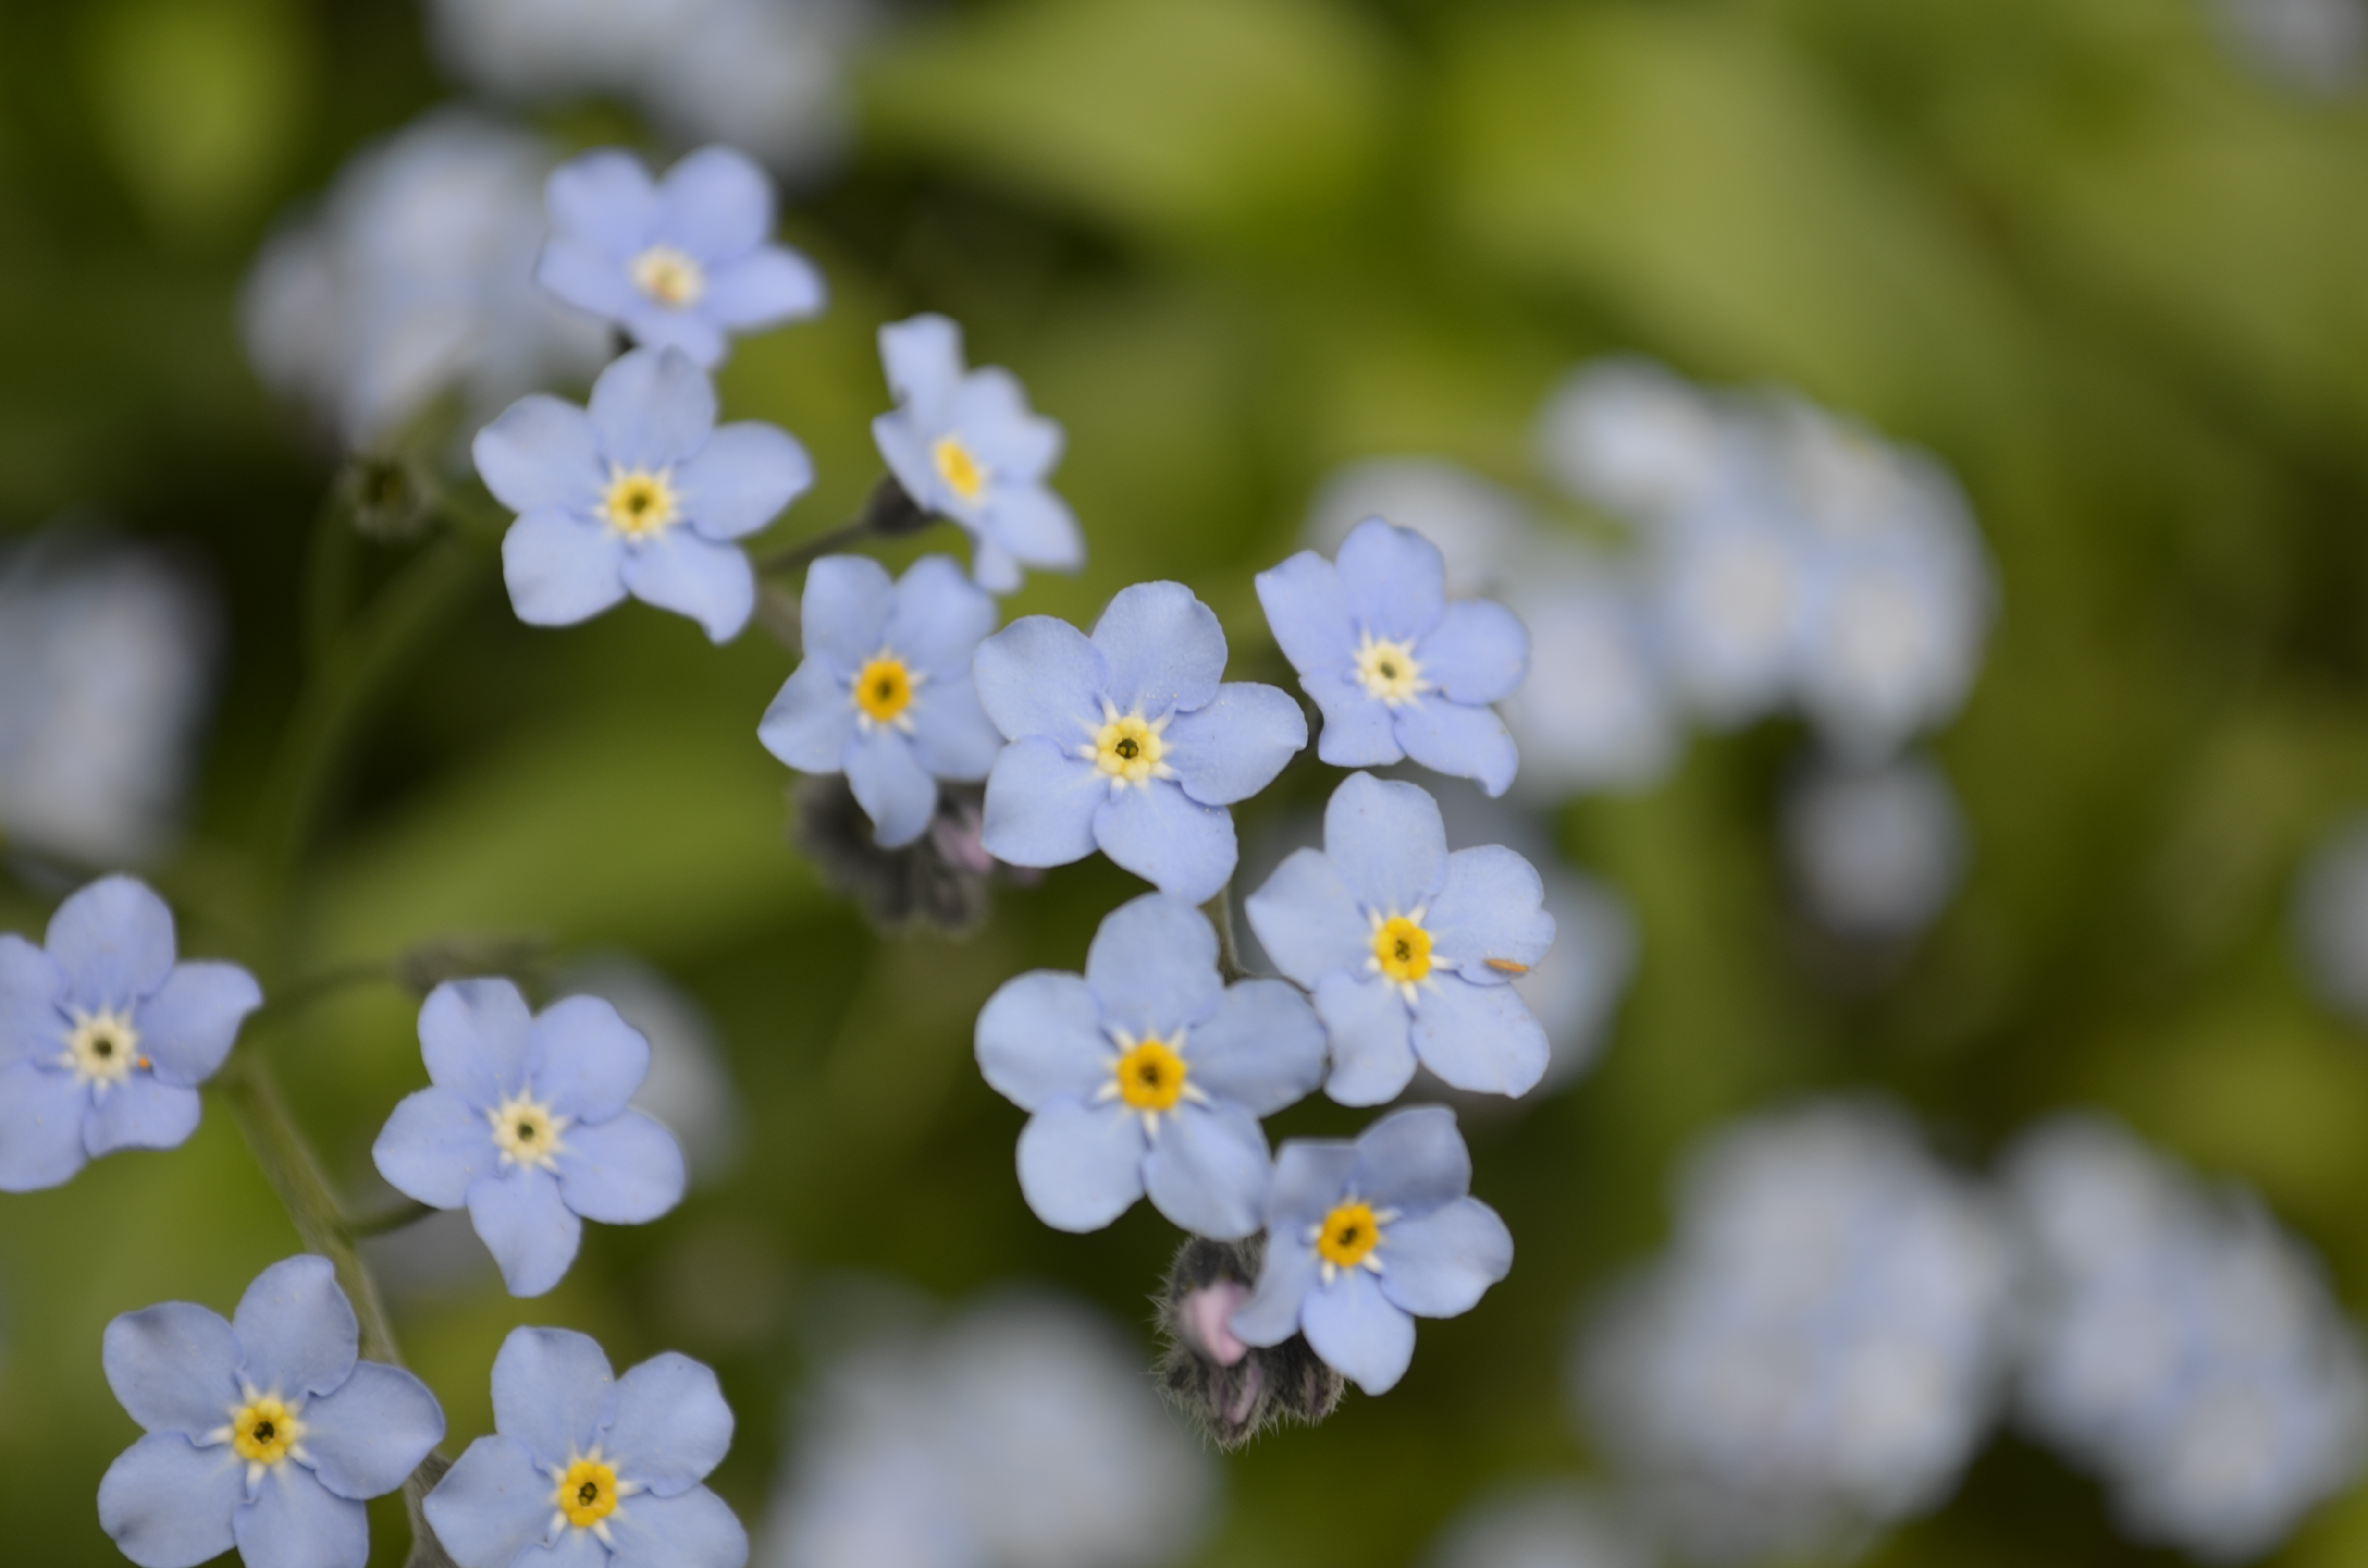 Tiny Blue Flowers Shes Got The Heart Of A Ballerina